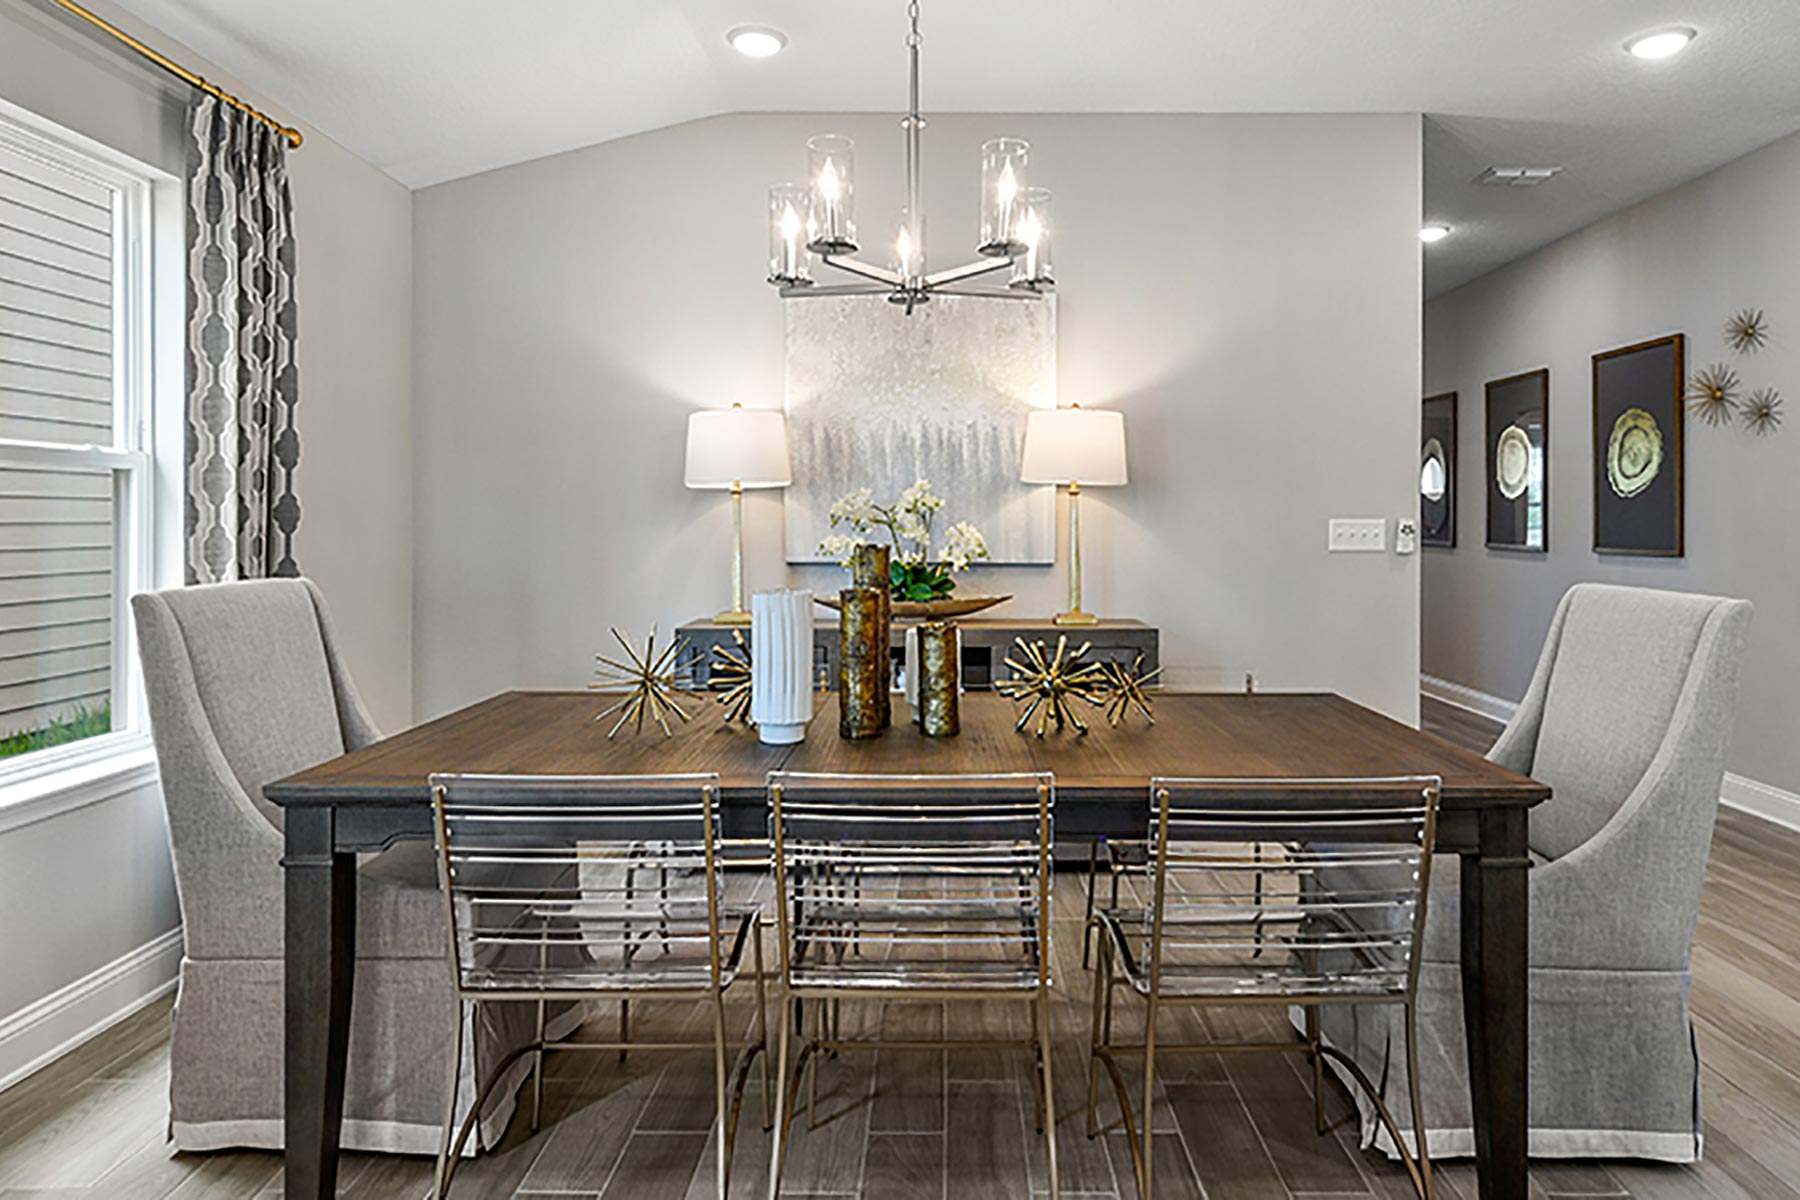 Elm Plan Dining at Wells Creek in Jacksonville Florida by Mattamy Homes